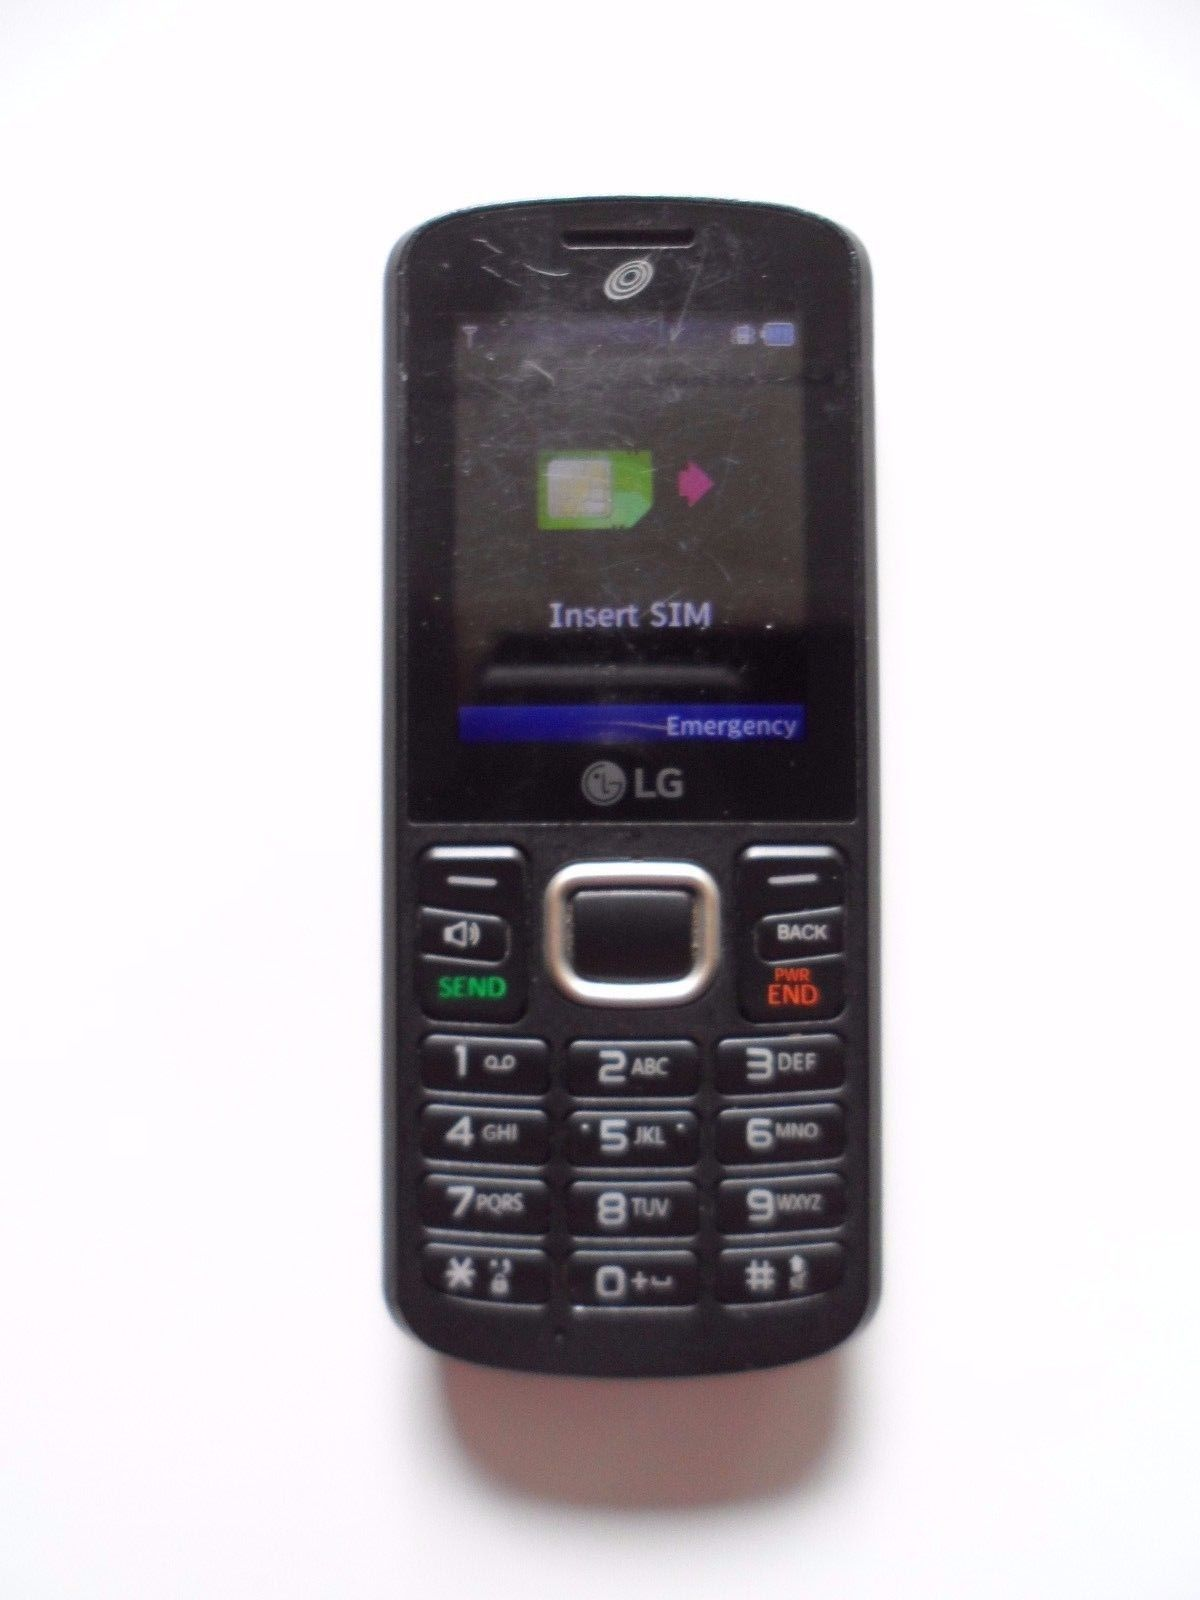 063d42e9f04 LG329G Tracfone Basic Cellphone and 50 similar items